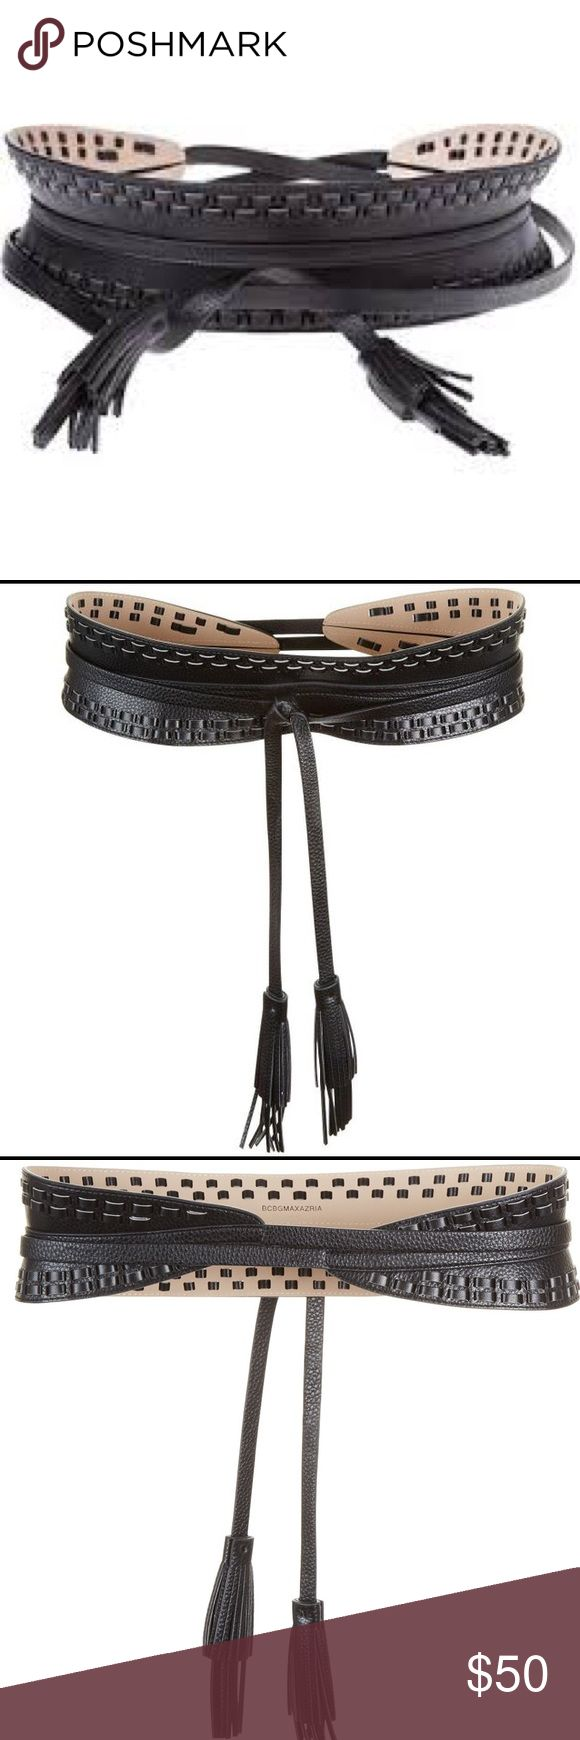 """Hot🔥 BCBGMAXAZRIA Whipstitch Waist Belt BCBG XS/S In pebbled faux leather, this waist-defining belt is elevated with textural whipstitch detail and tassel tips for a bohemian-chic touch. Fantastic piece - great fit and easy to wear.   Adjustable tie closure. Circumference of body of belt 25"""" (without tie) BCBGMaxAzria Accessories Belts"""